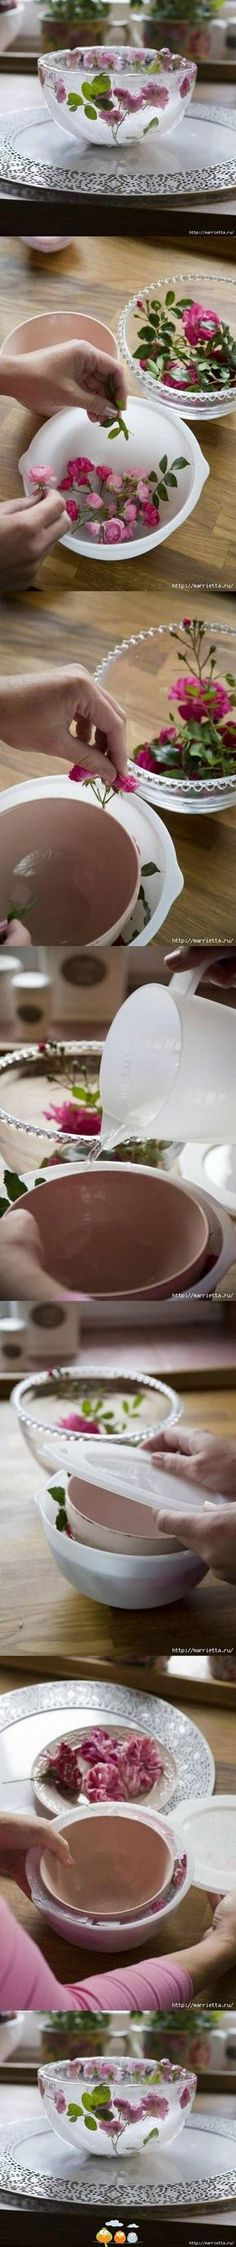 How to make a floral ice bowl for ritual work: